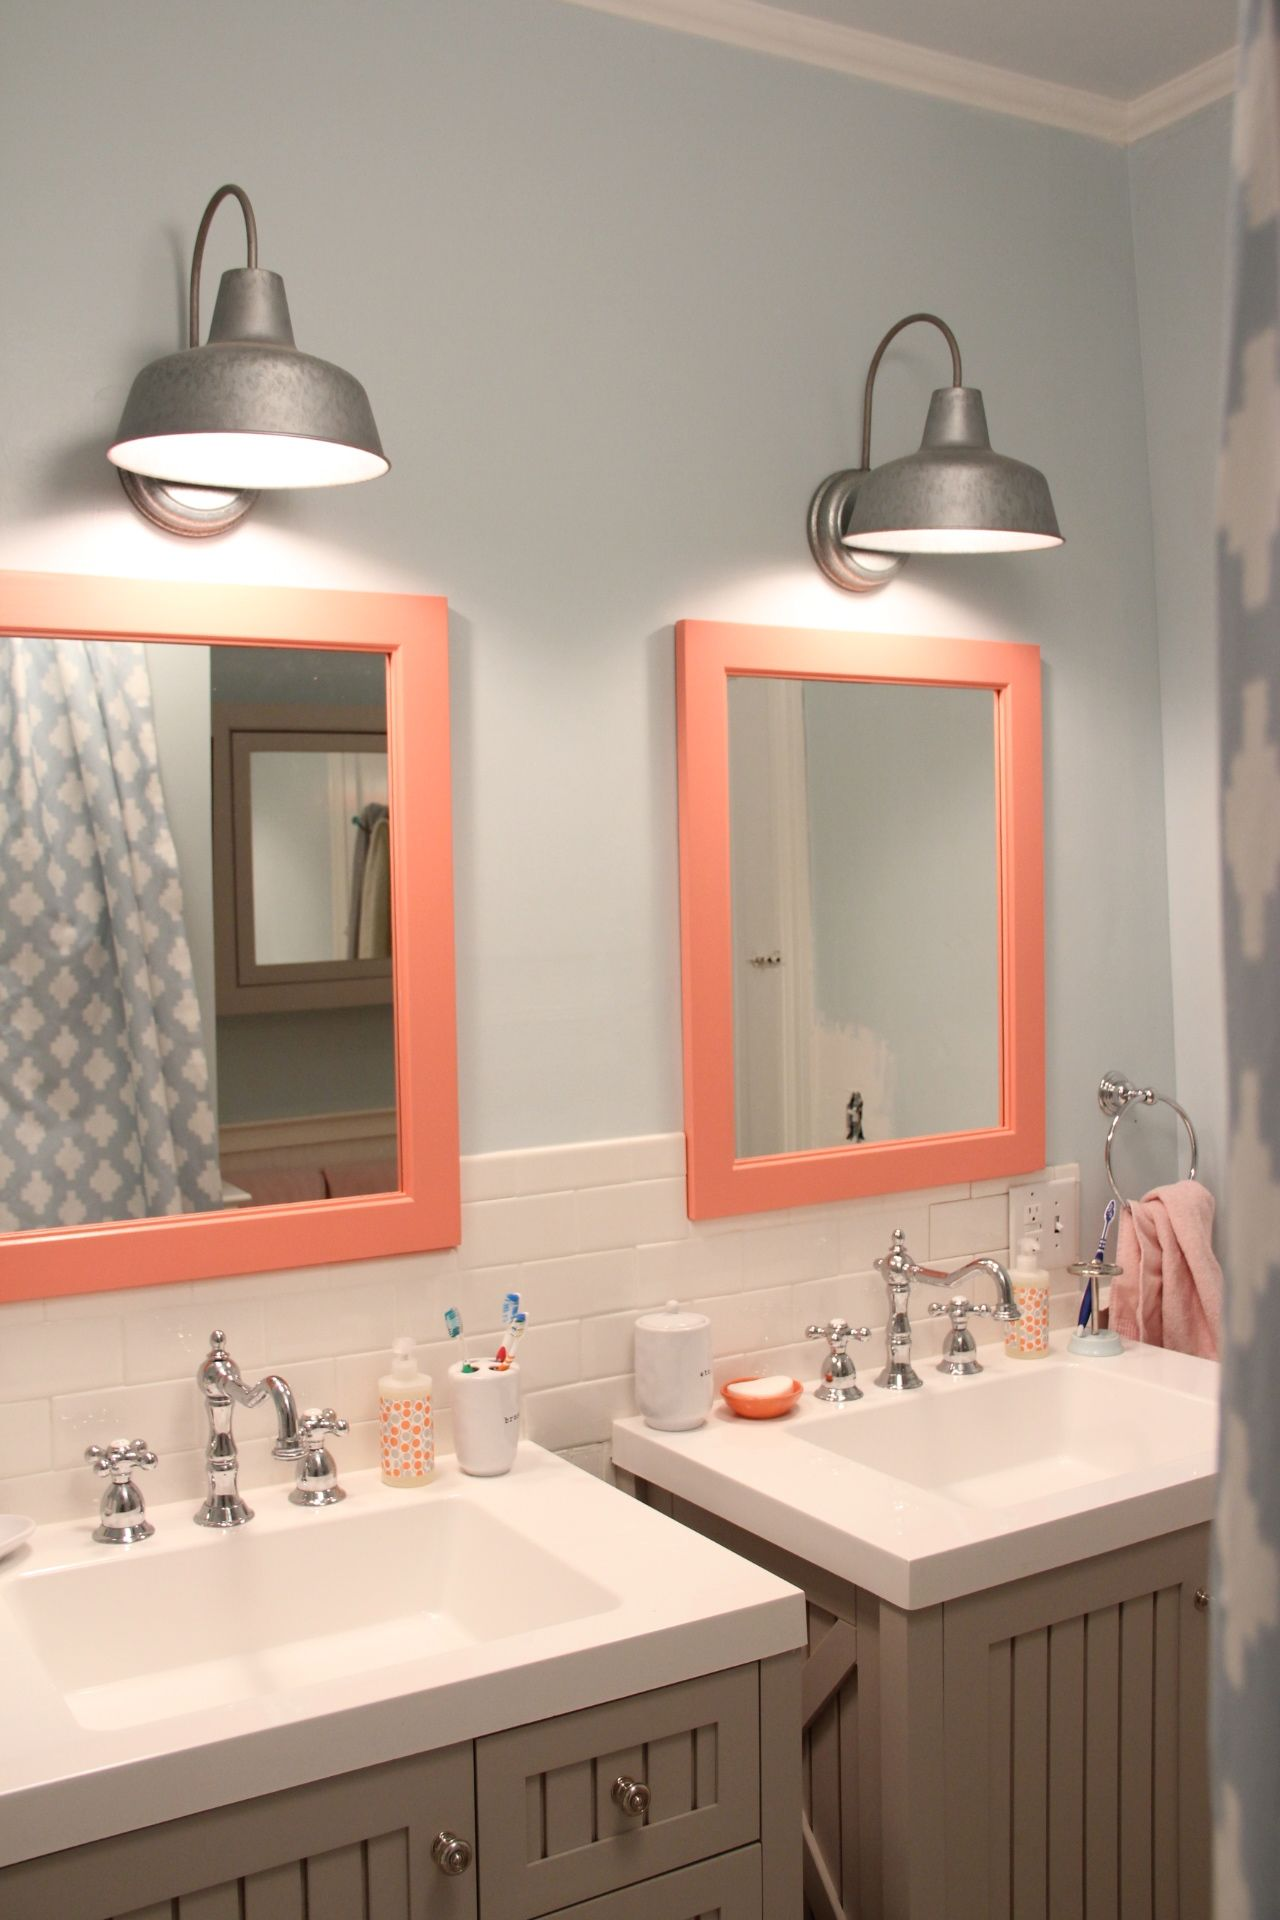 interesting bathroom light fixtures%0A Girls bathroom light fixture and colored mirror frame